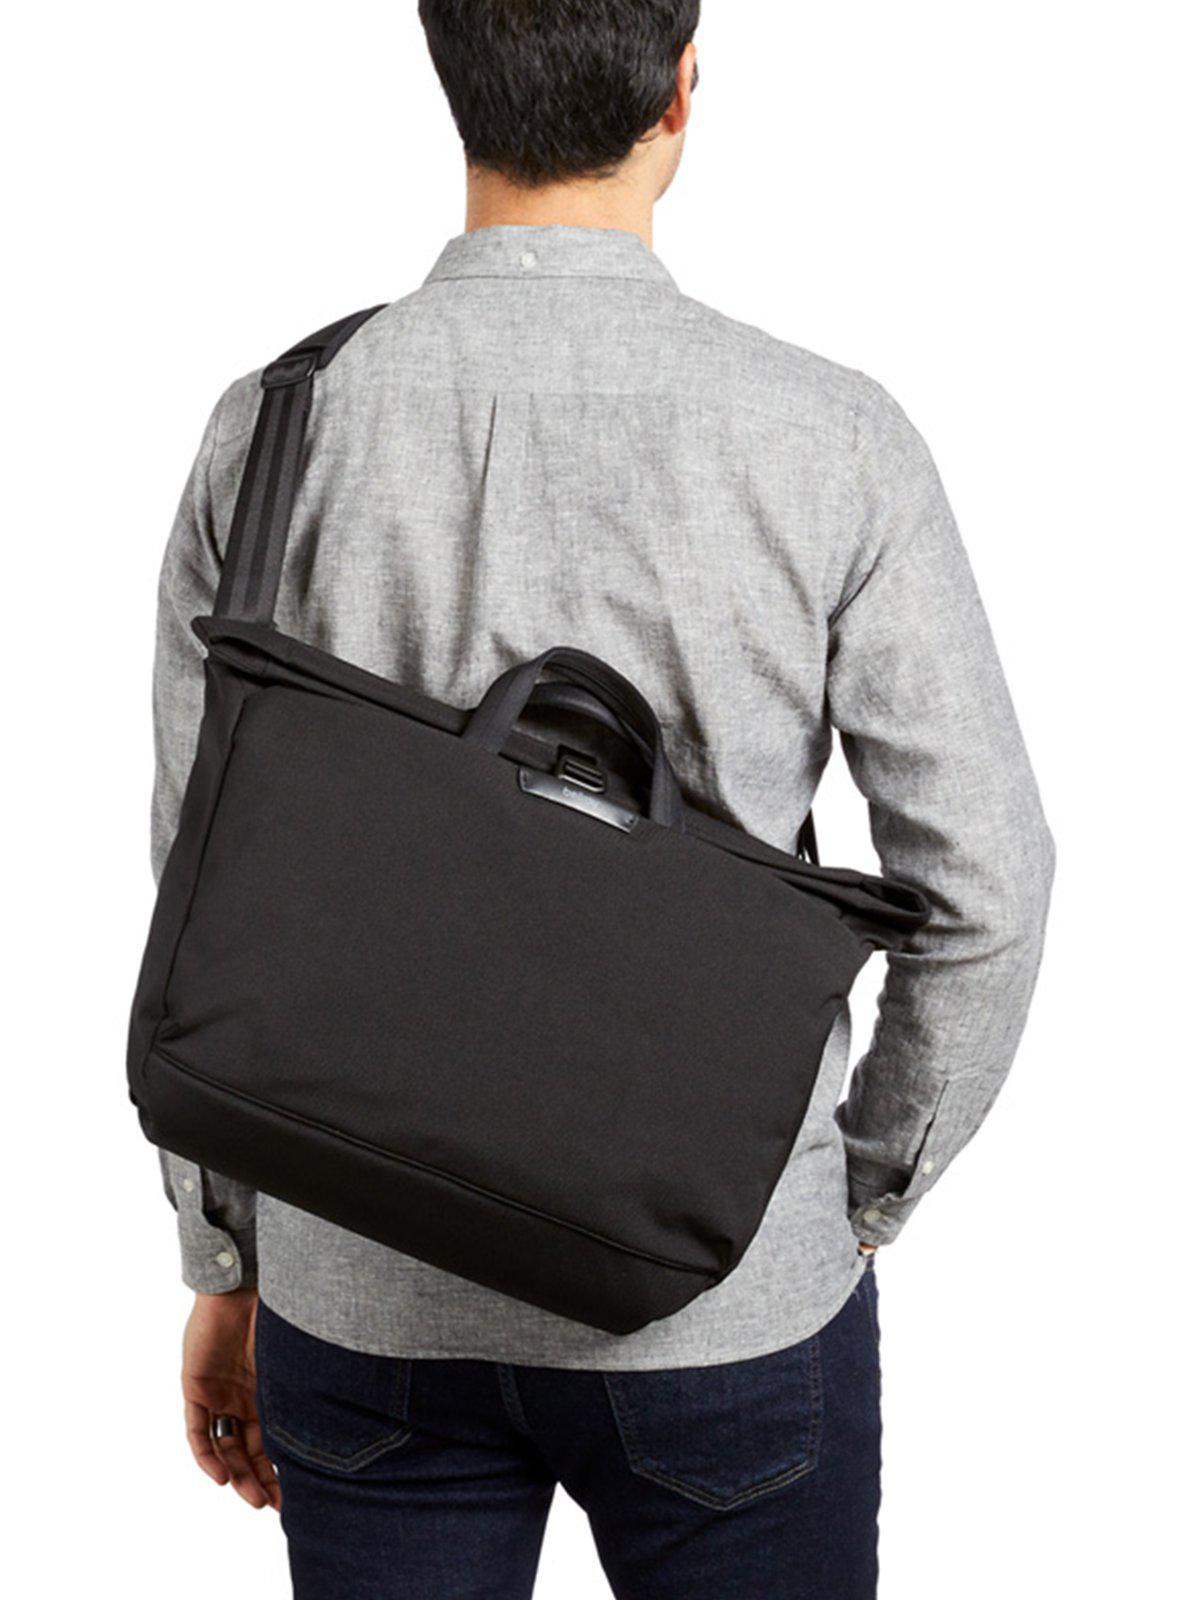 Bellroy System Work Bag Black - MORE by Morello - Indonesia